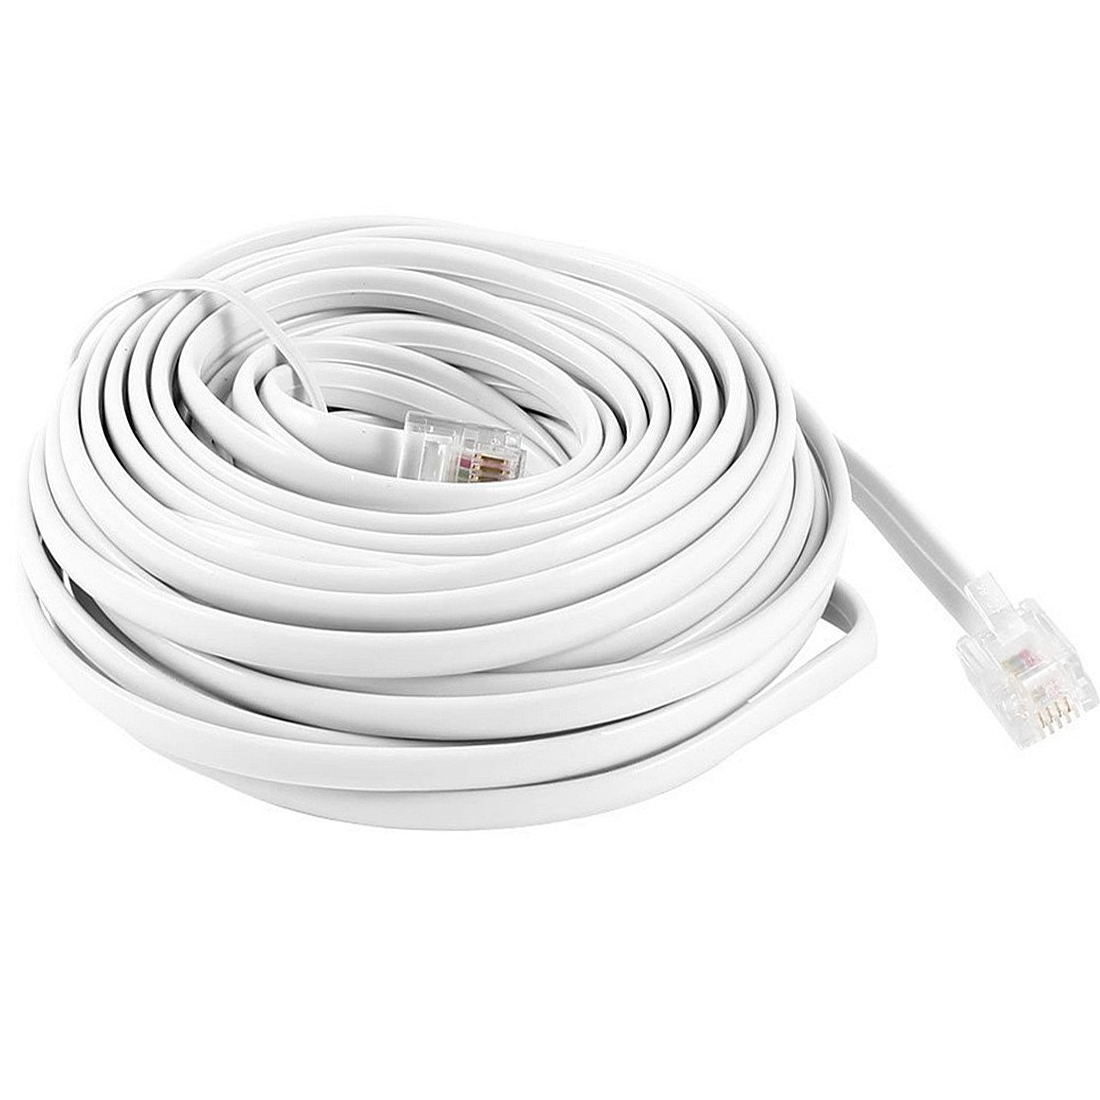 10Meters RJ11 6P4C Modular Telephone Cord Extenstion Lead Cable,Pure Copper Wire For Landline Telephone Modem Fax POS ADSL